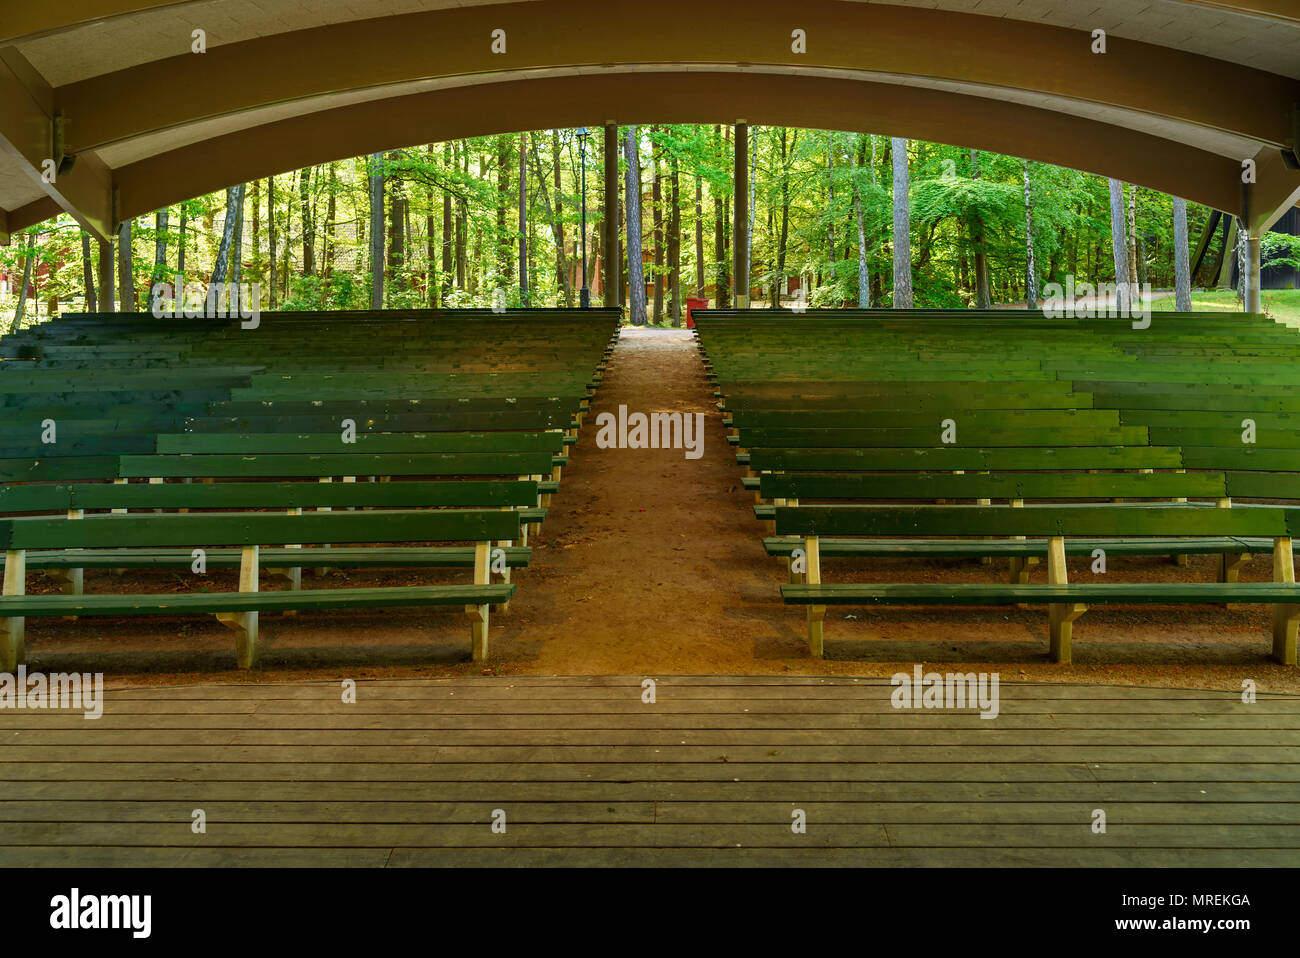 Awesome Empty Benches And An Empty Stage On This Outdoor Arena In A Caraccident5 Cool Chair Designs And Ideas Caraccident5Info